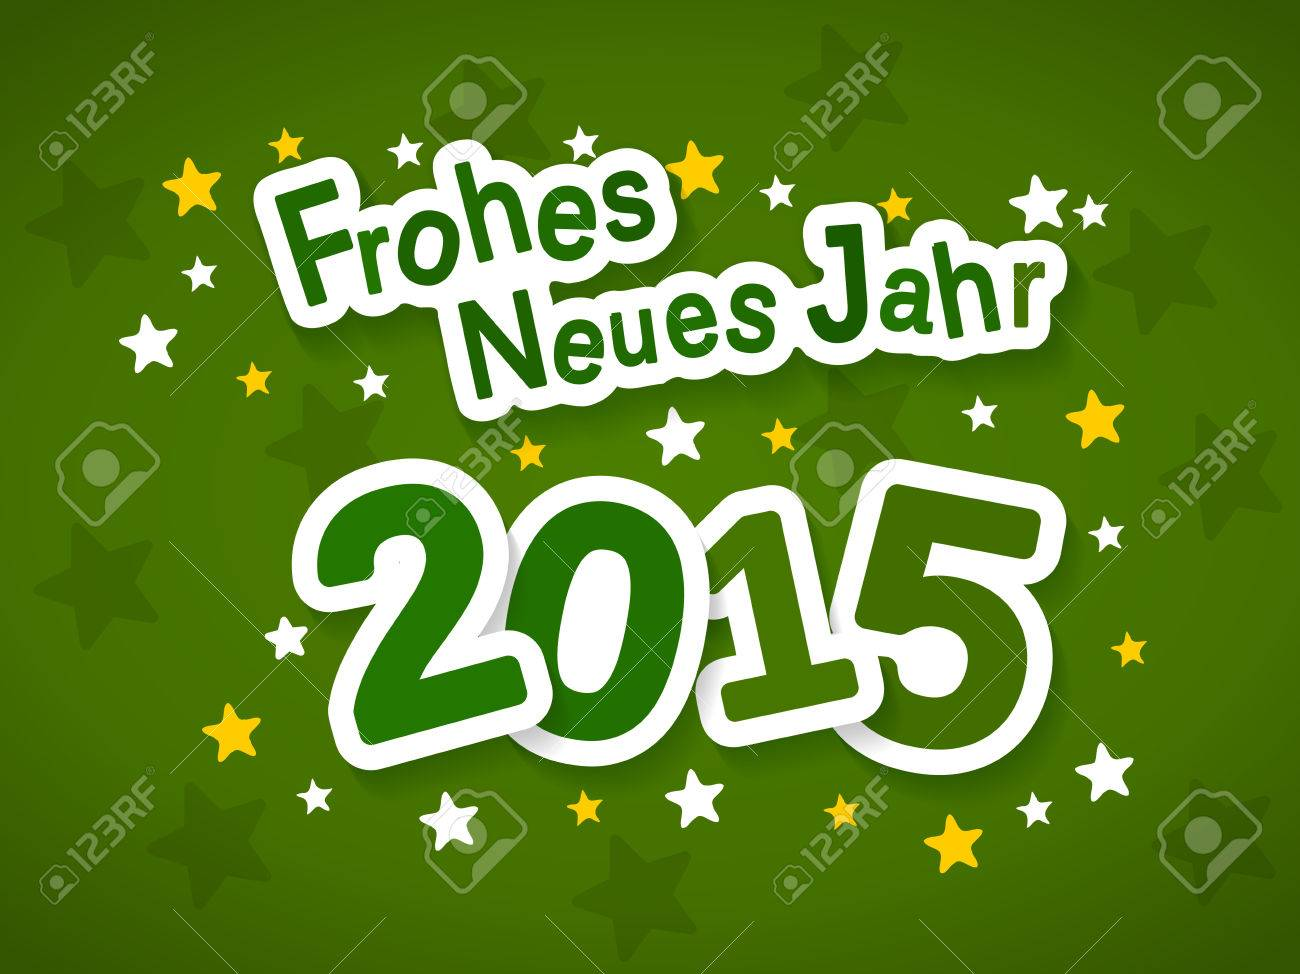 Frohes Neues Jahr Meaning Happy New Year 2015 Greeting In German